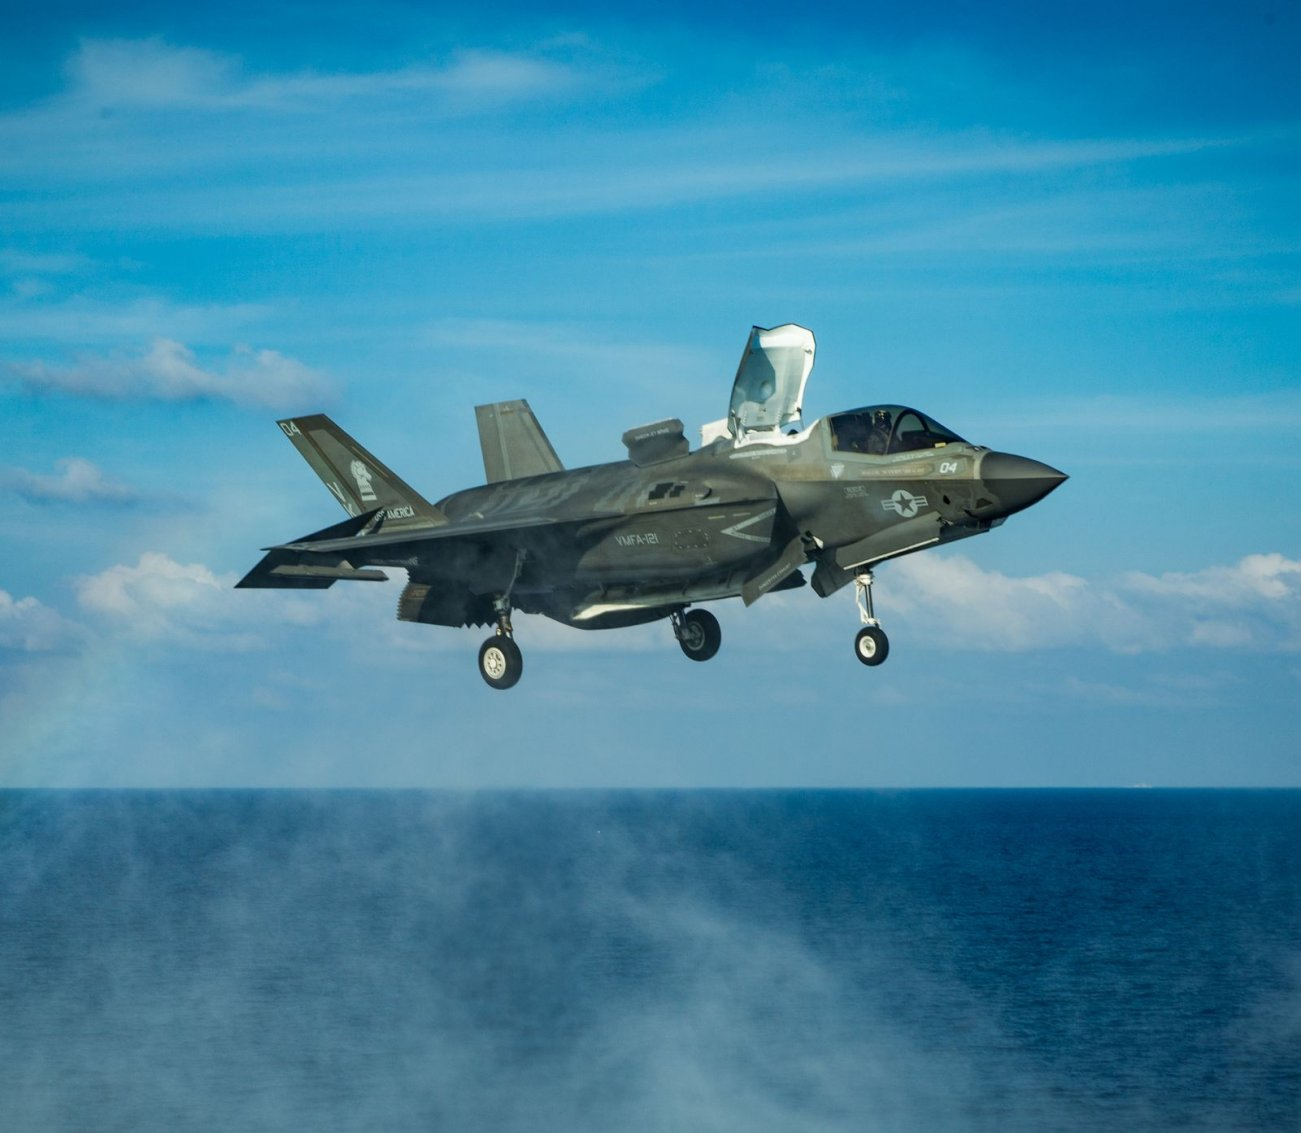 F-35B: How the U.S. Marines Are Embracing This Powerful Stealth Fighter